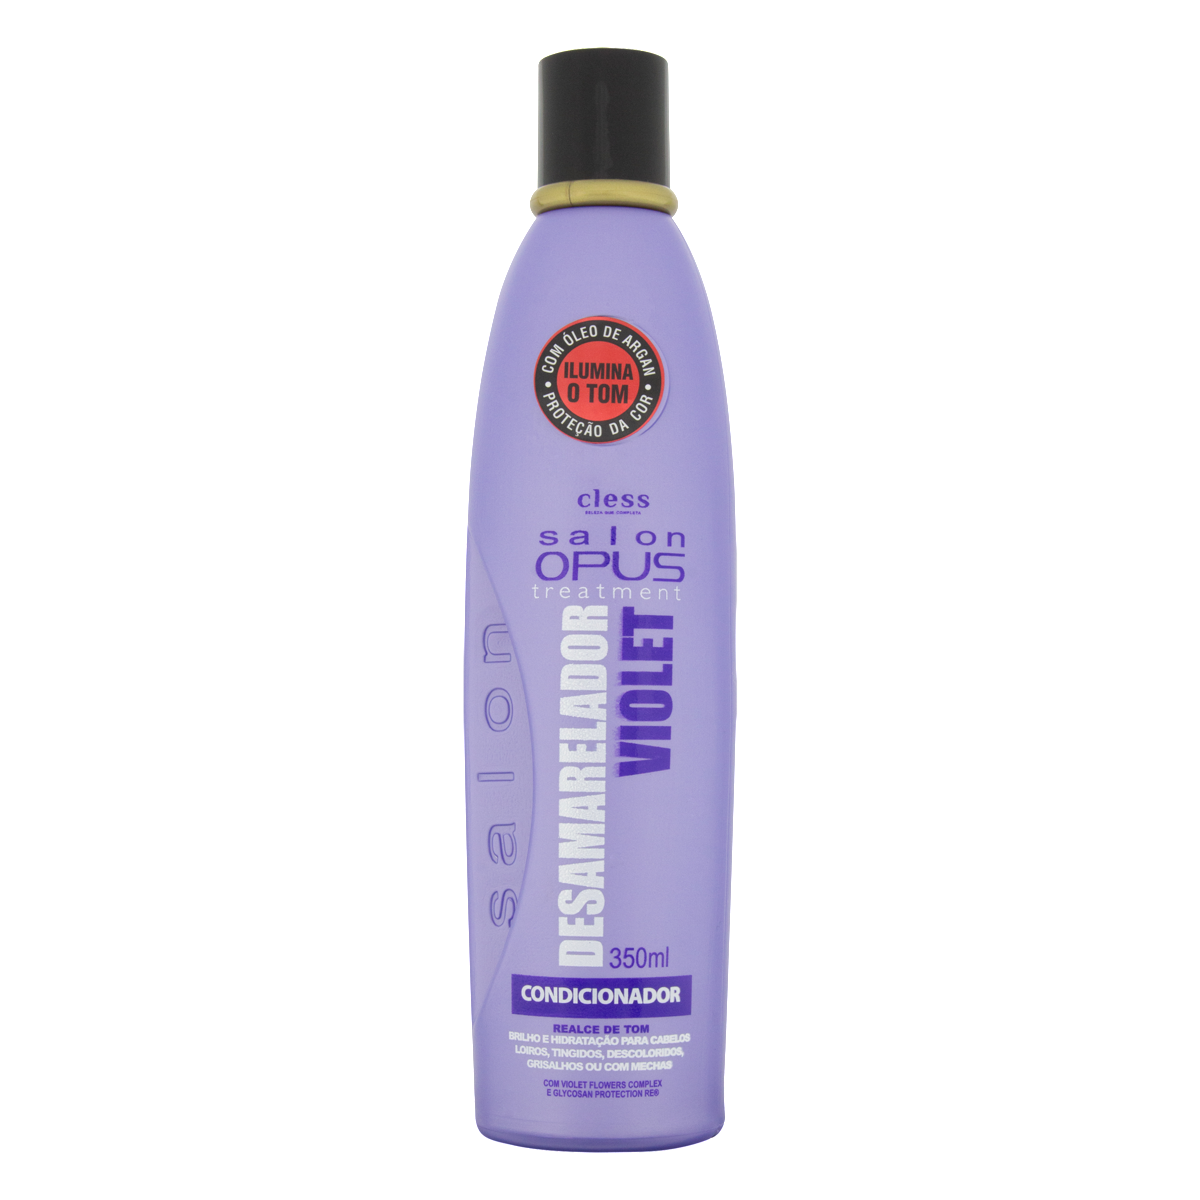 7896010171297 - CONDICIONADOR SALON SALON OPUS 350ML VIOLET UNIT